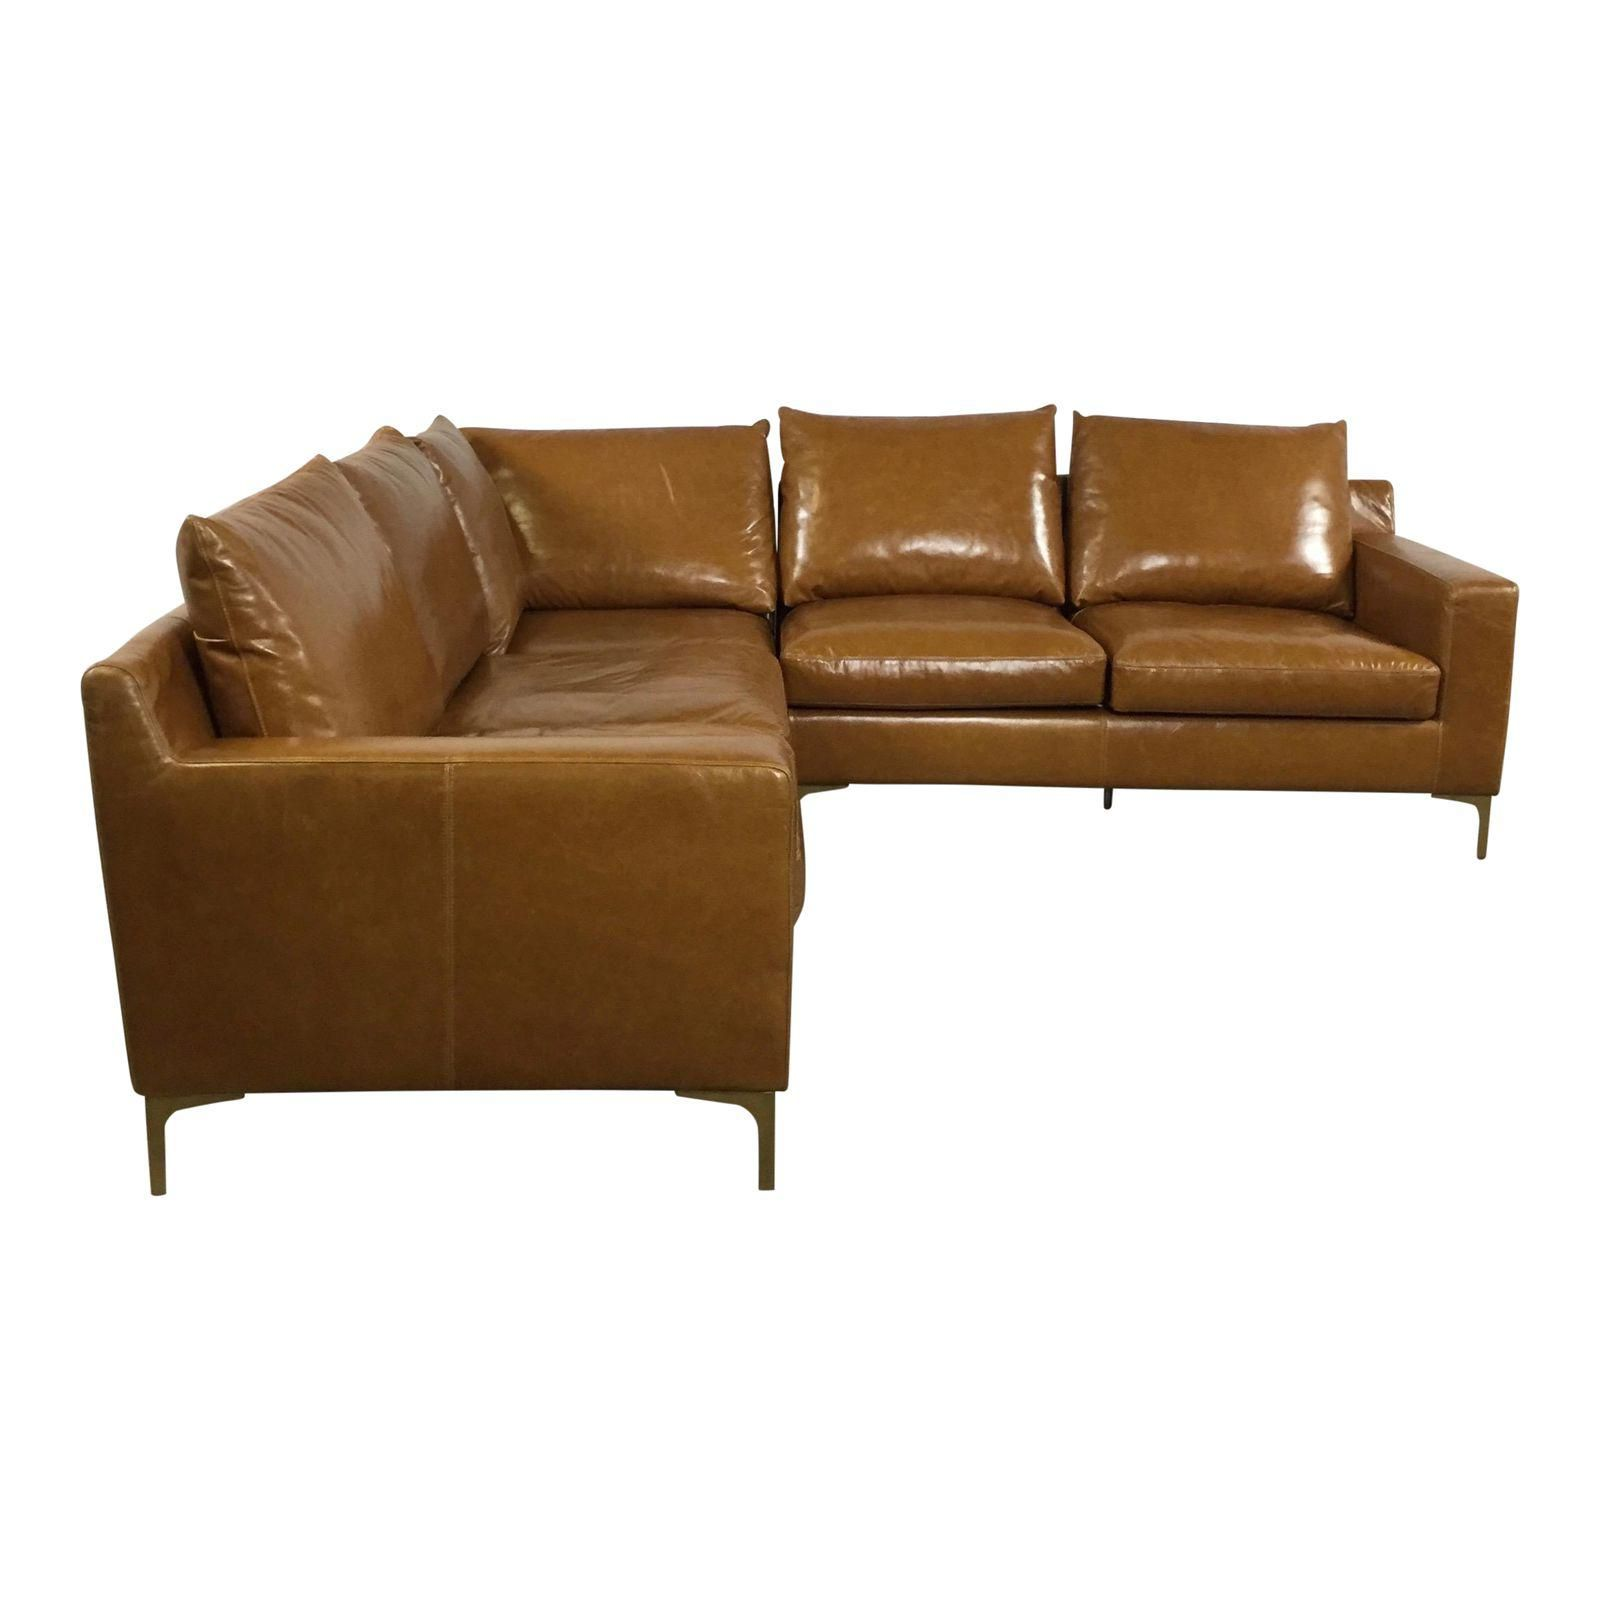 Superb Image Of Modern Saddle Leather Sectional Sofa Midcentury Alphanode Cool Chair Designs And Ideas Alphanodeonline